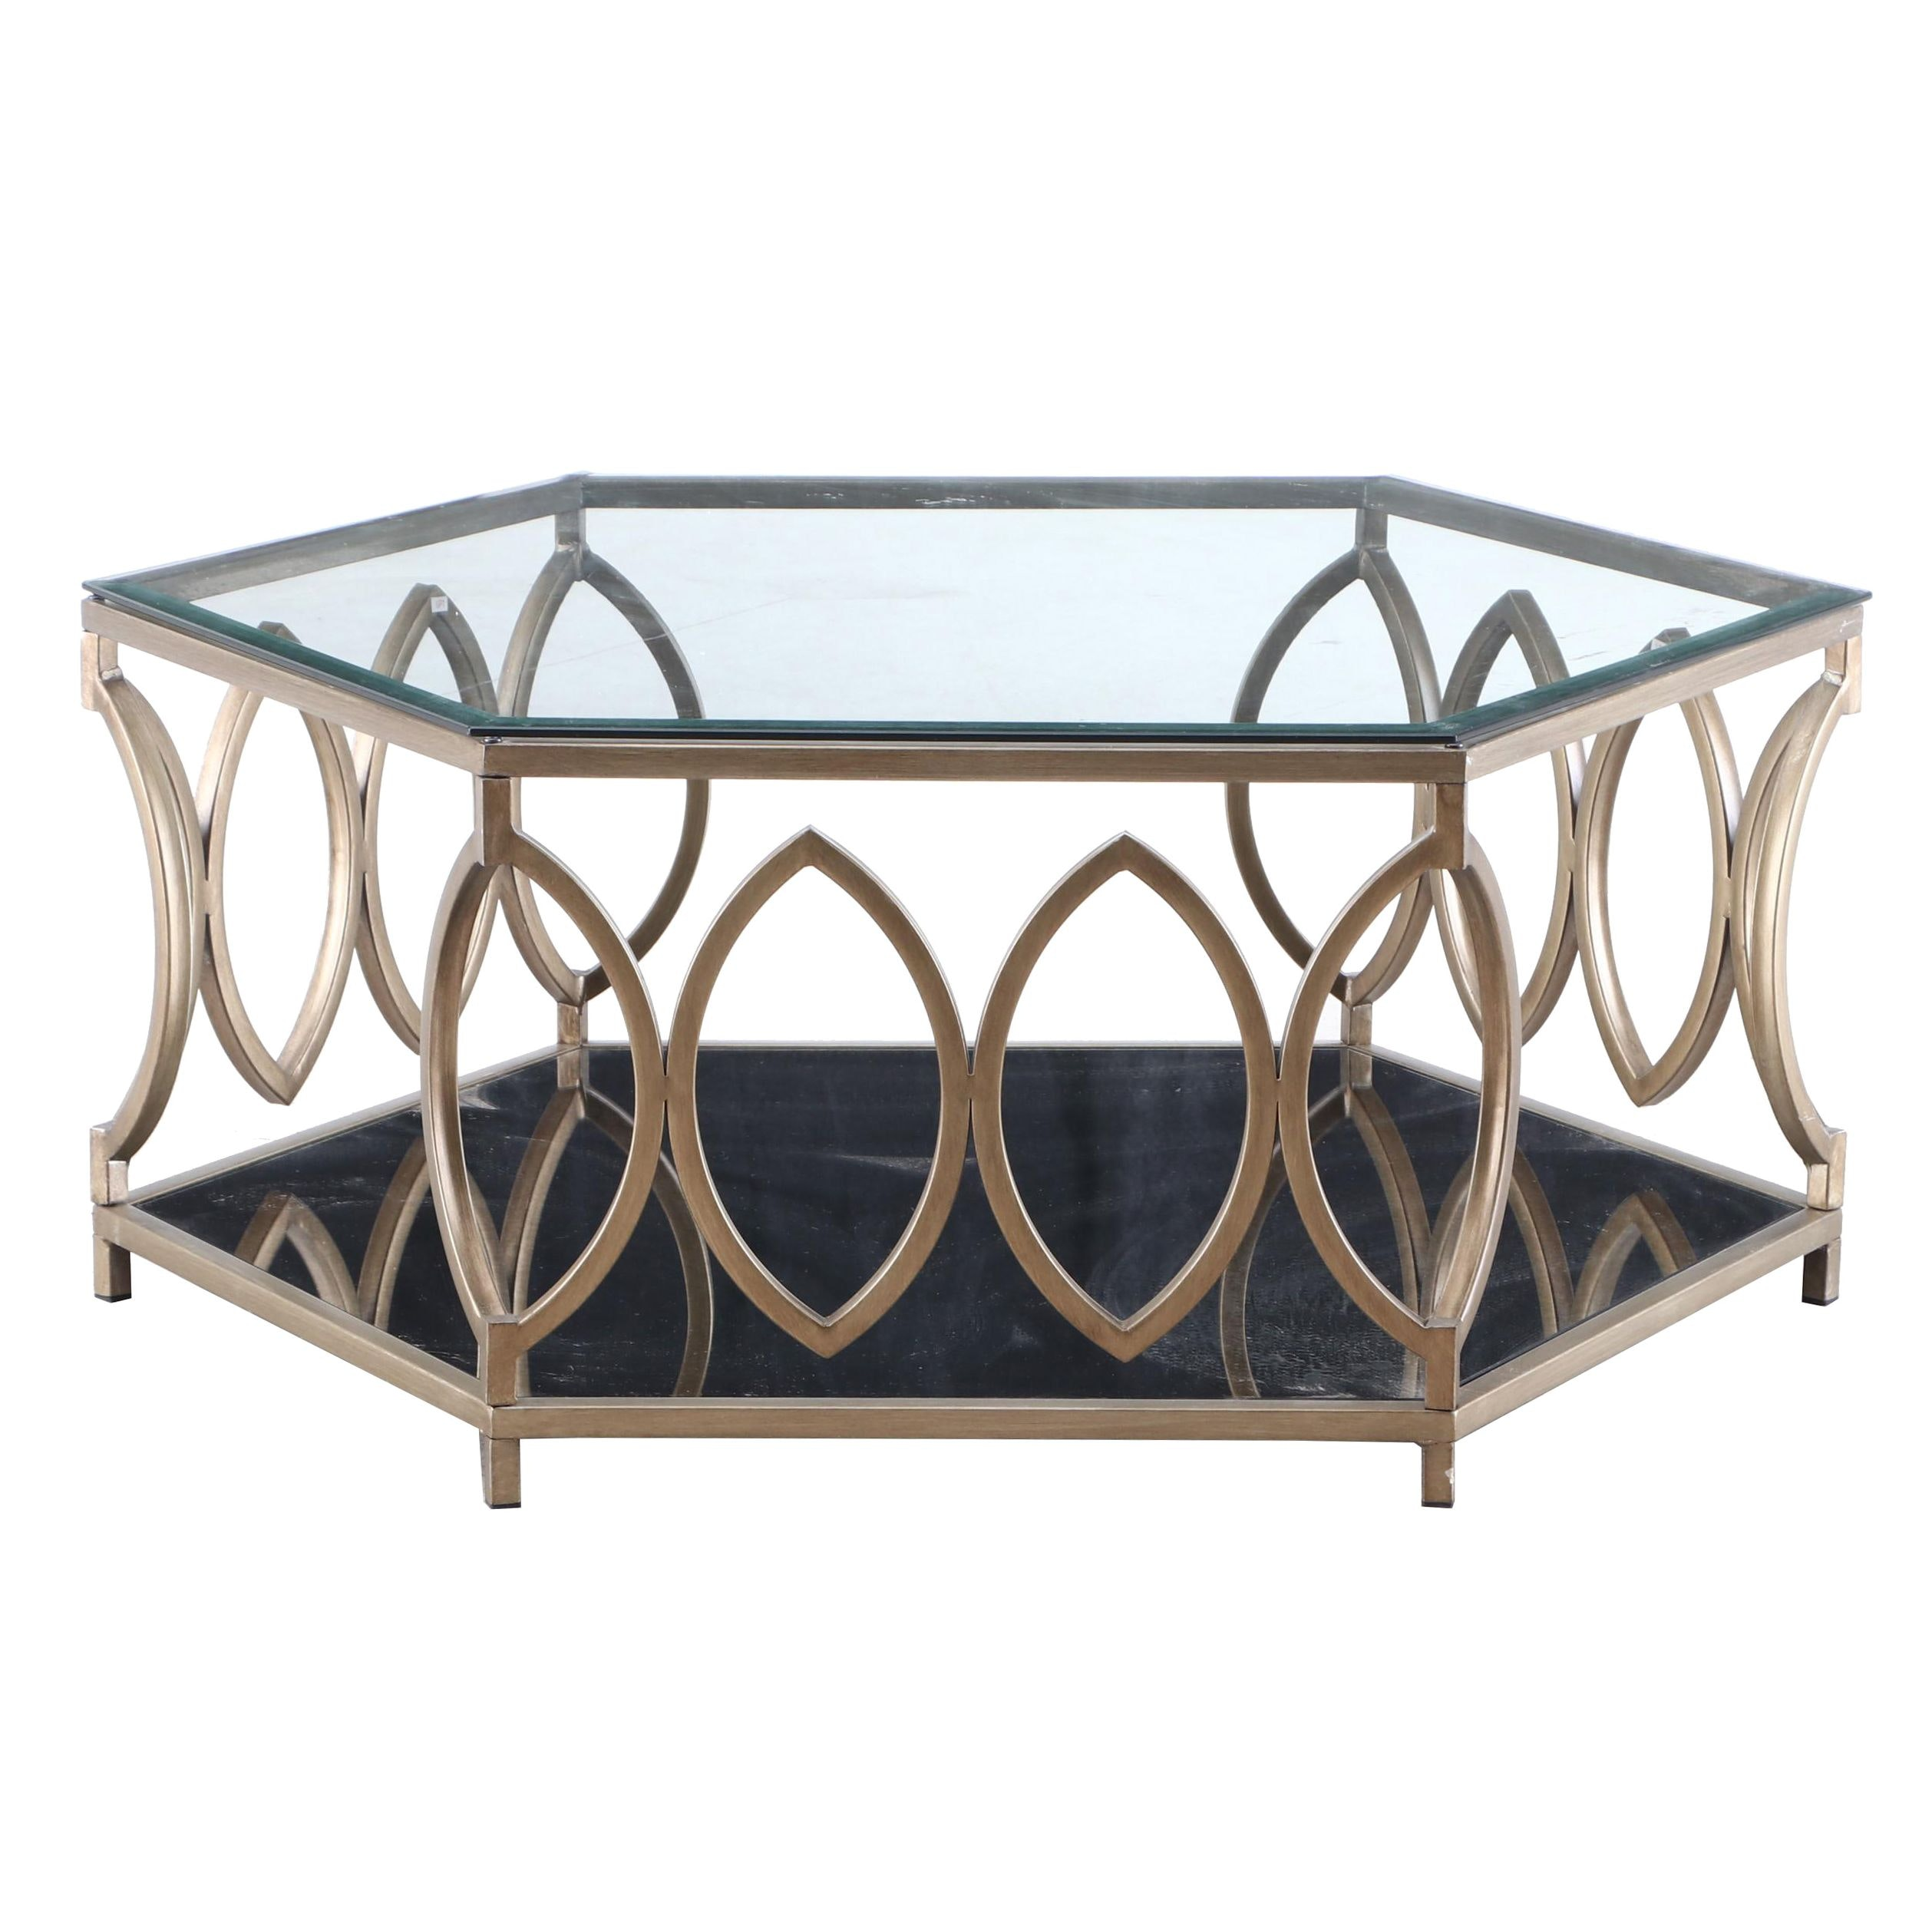 Contemporary Hexagonal Metal and Glass Coffee Table